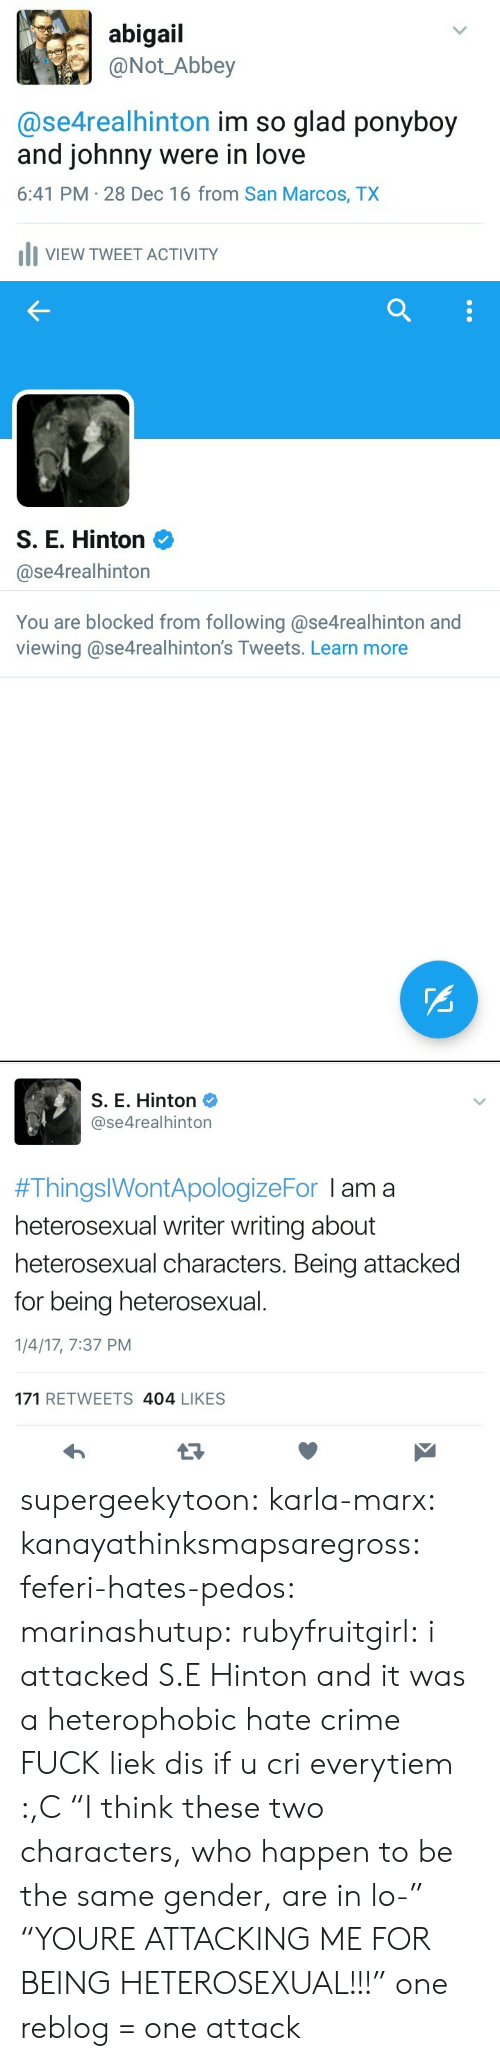 """heterosexual: abigail  @Not Abbey  @se4realhinton im so glad ponyboy  and johnny were in love  6:41 PM 28 Dec 16 from San Marcos, TX  IVIEW TWEET ACTIVITY   S. E. Hinton 2  @se4realhinton  You are blocked from following @se4realhinton and  viewing @se4realhinton's Tweets. Learn more   S. E. Hinton  @se4realhinton  #ThingslWontApologizeFor I am a  heterosexual writer writing about  heterosexual characters. Being attacked  for being heterosexual  1/4/17, 7:37 PM  171 RETWEETS 404 LIKES supergeekytoon:  karla-marx:  kanayathinksmapsaregross:  feferi-hates-pedos:   marinashutup:  rubyfruitgirl: i attacked S.E Hinton and it was a  heterophobic hate crime FUCK  liek dis if u cri everytiem :,C   """"I think these two characters, who happen to be the same gender, are in lo-"""" """"YOURE ATTACKING ME FOR BEING HETEROSEXUAL!!!""""  one reblog = one attack"""